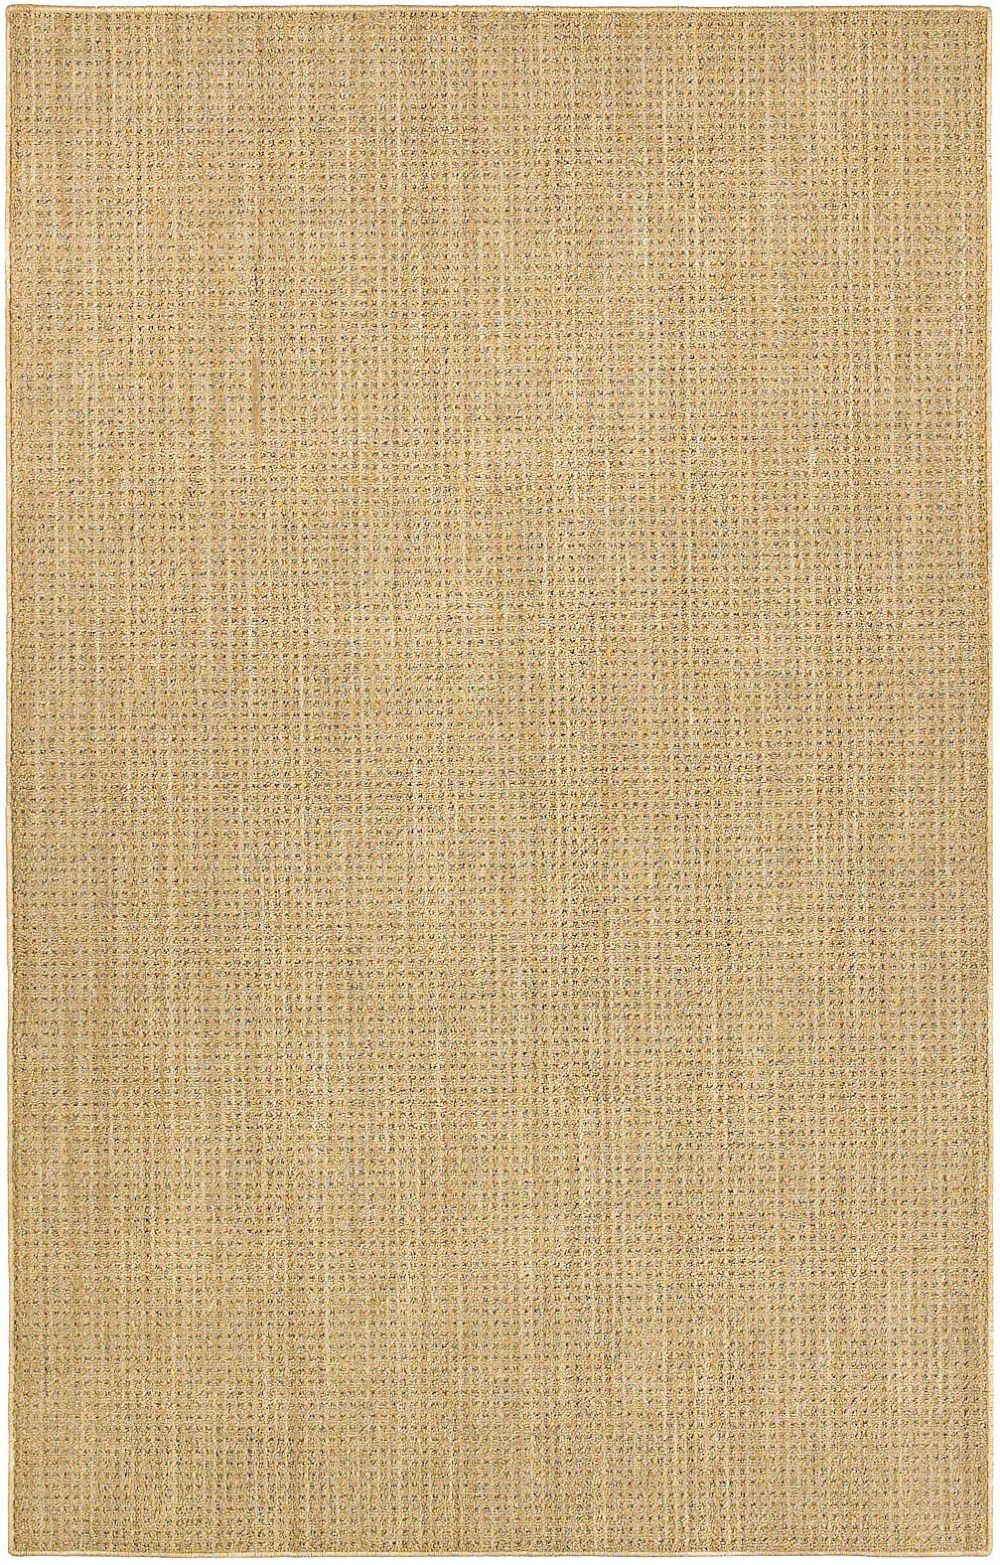 shaw natural expressions solid/striped area rug collection